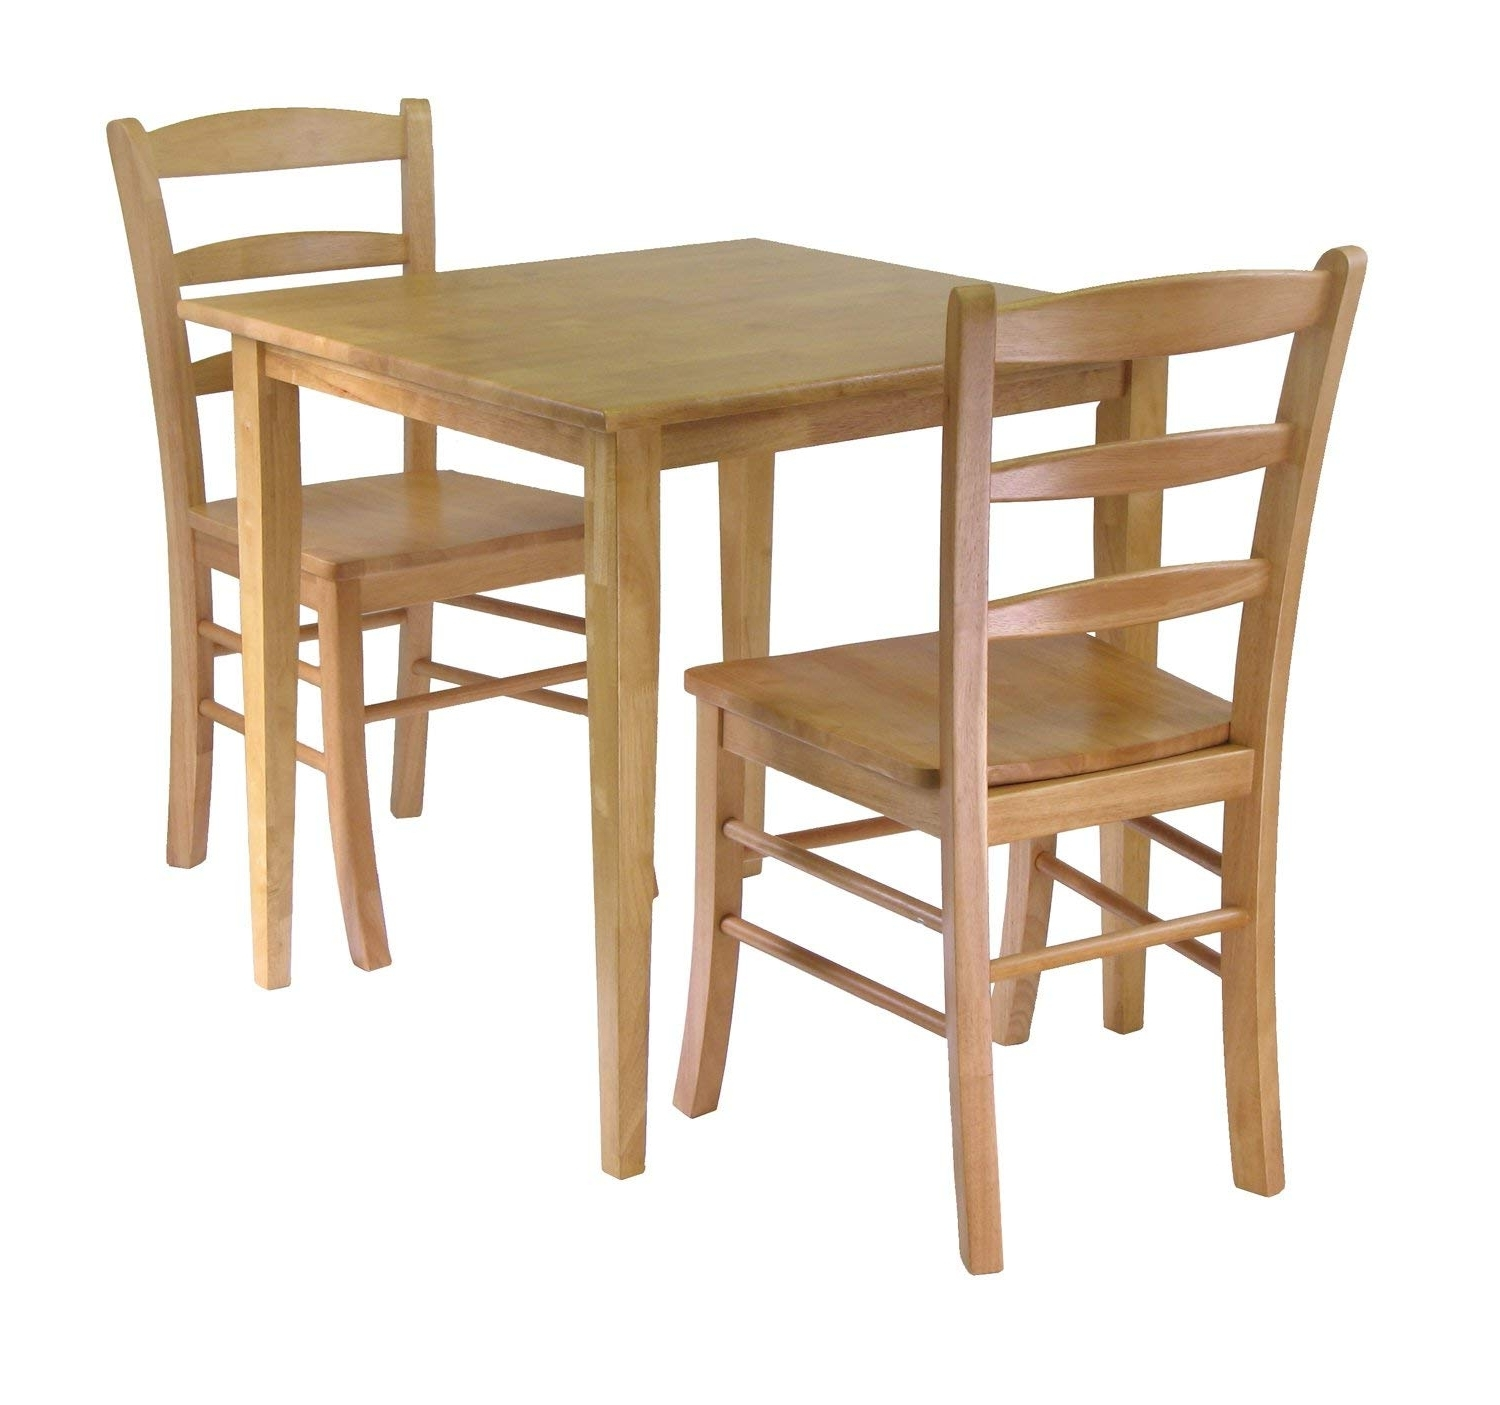 Most Current Small Dining Sets Pertaining To Amazon – Winsome Groveland 3 Piece Wood Dining Set, Light Oak (View 13 of 25)